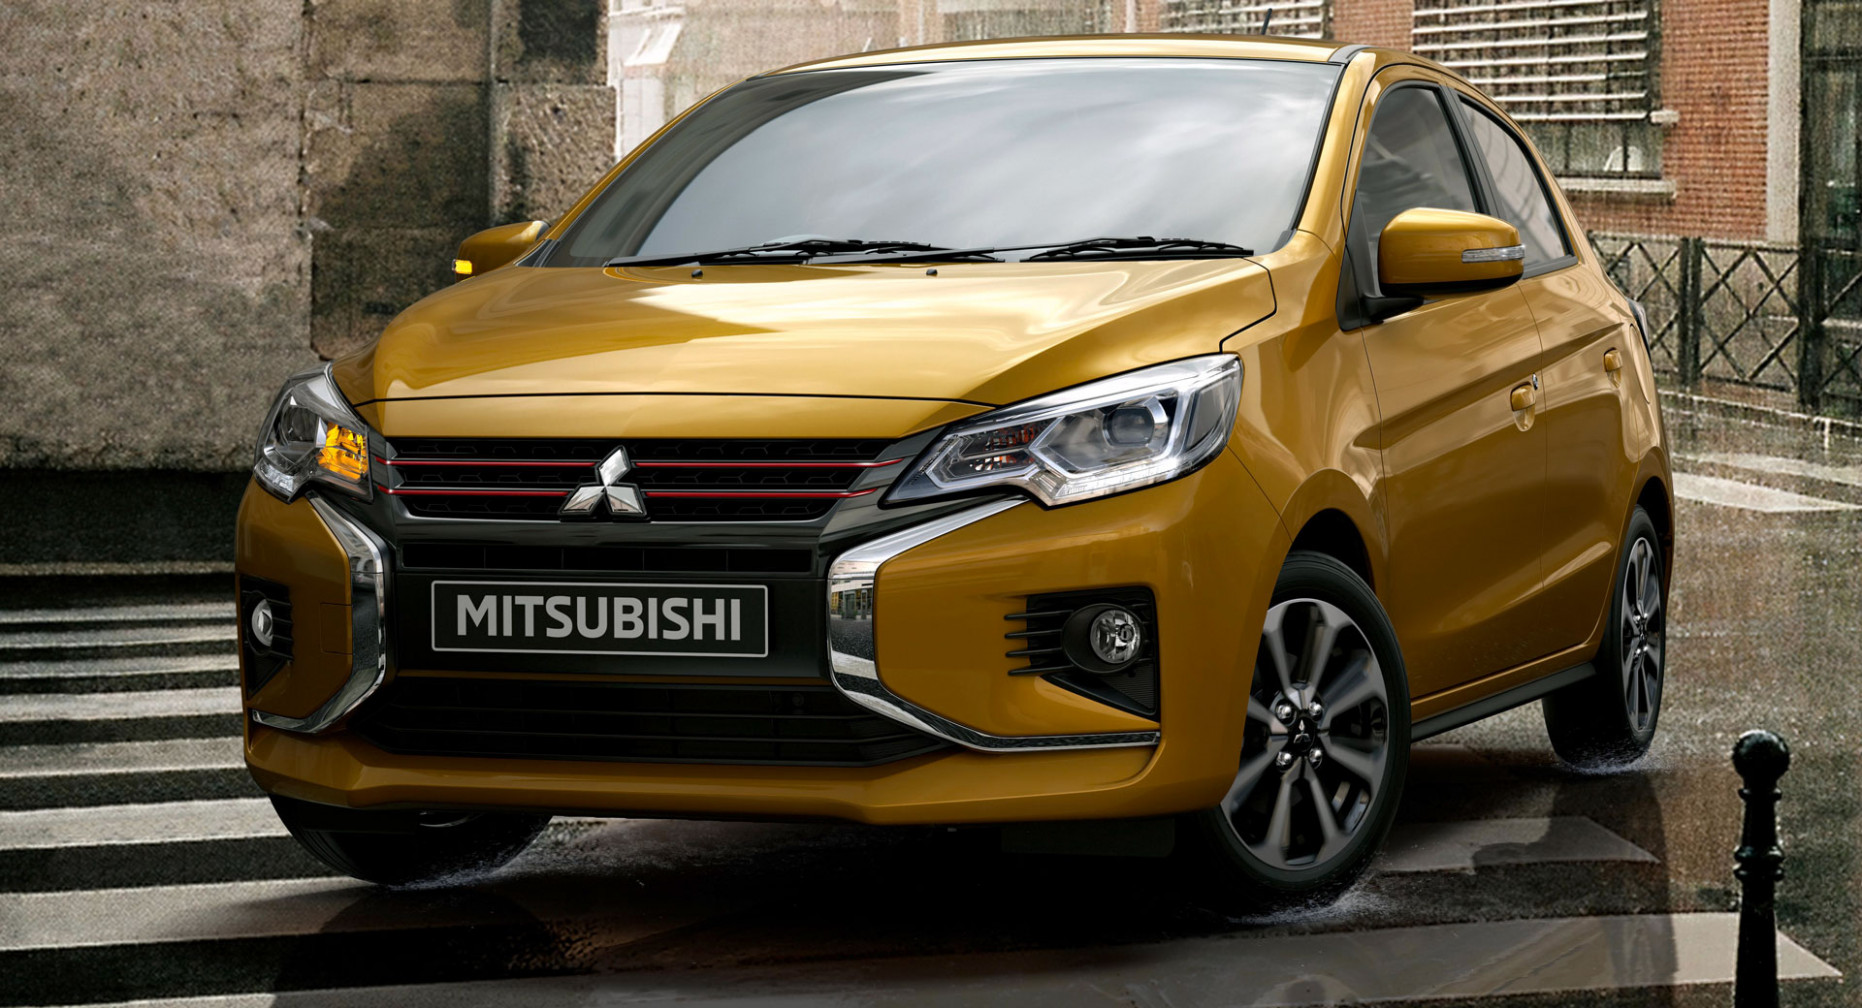 Redesign and Review Mitsubishi Mirage Facelift 2022